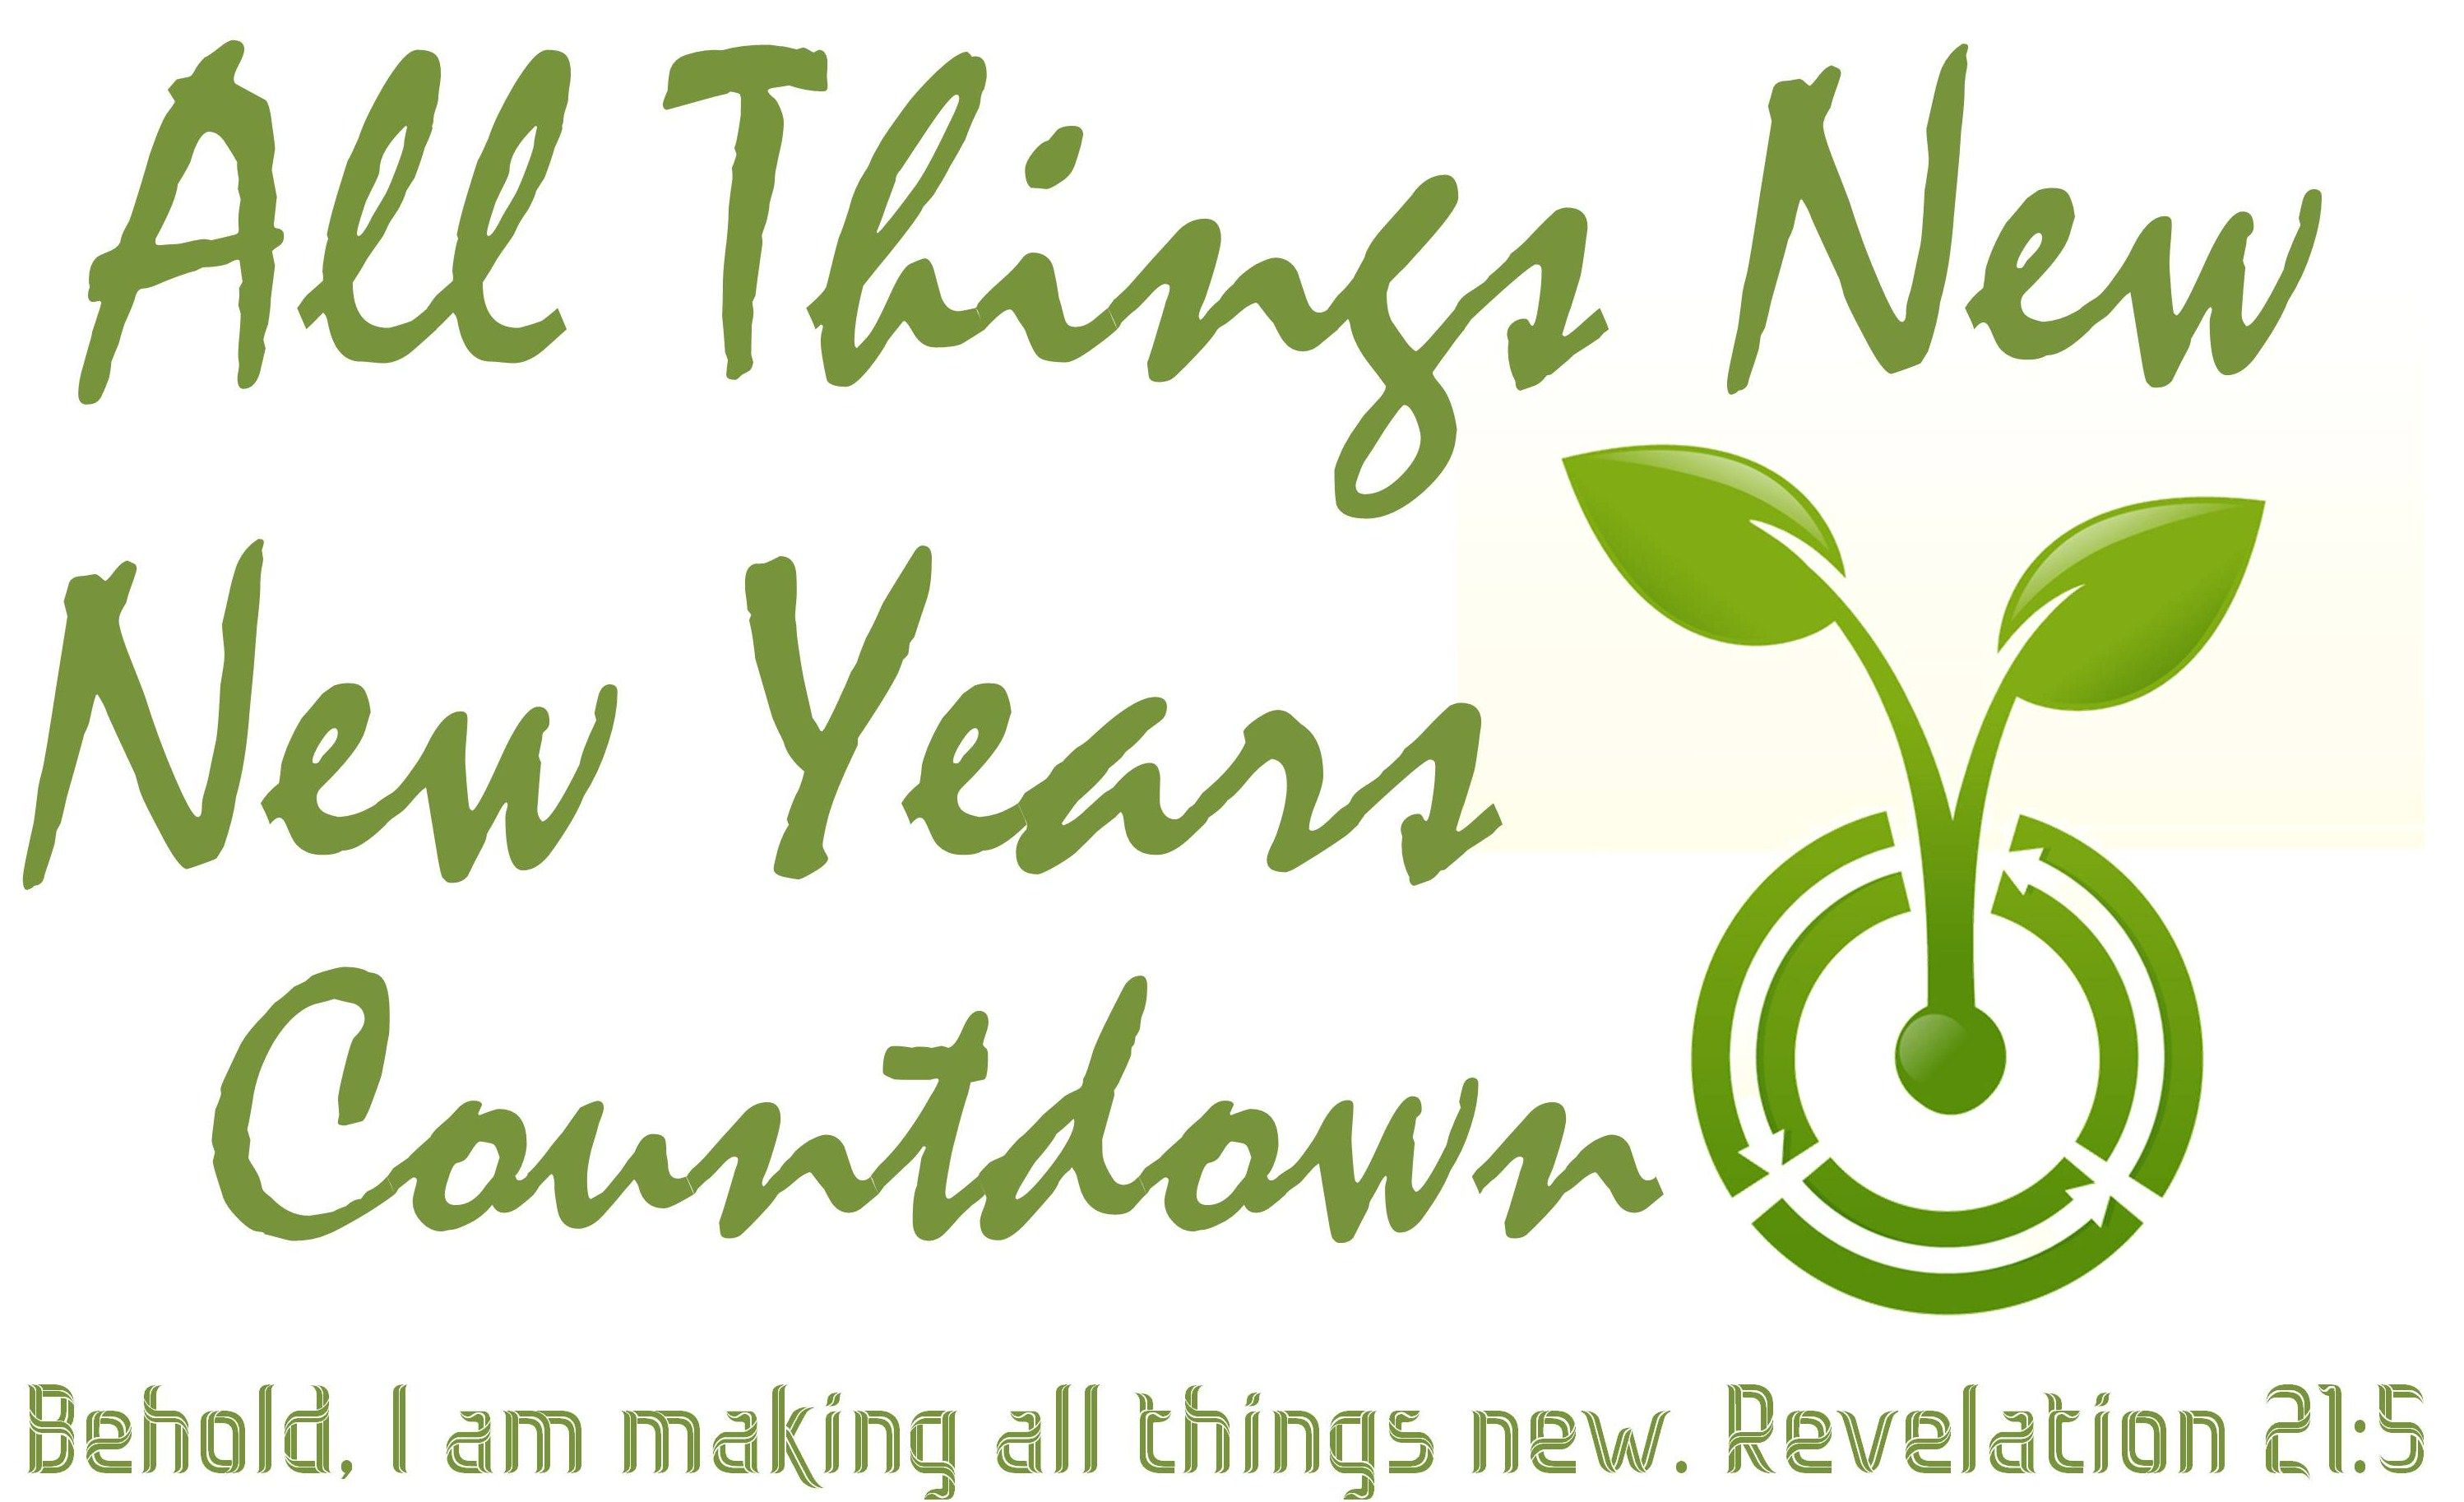 Blessed New Year Clip Art Royalty Free Berry Clip art